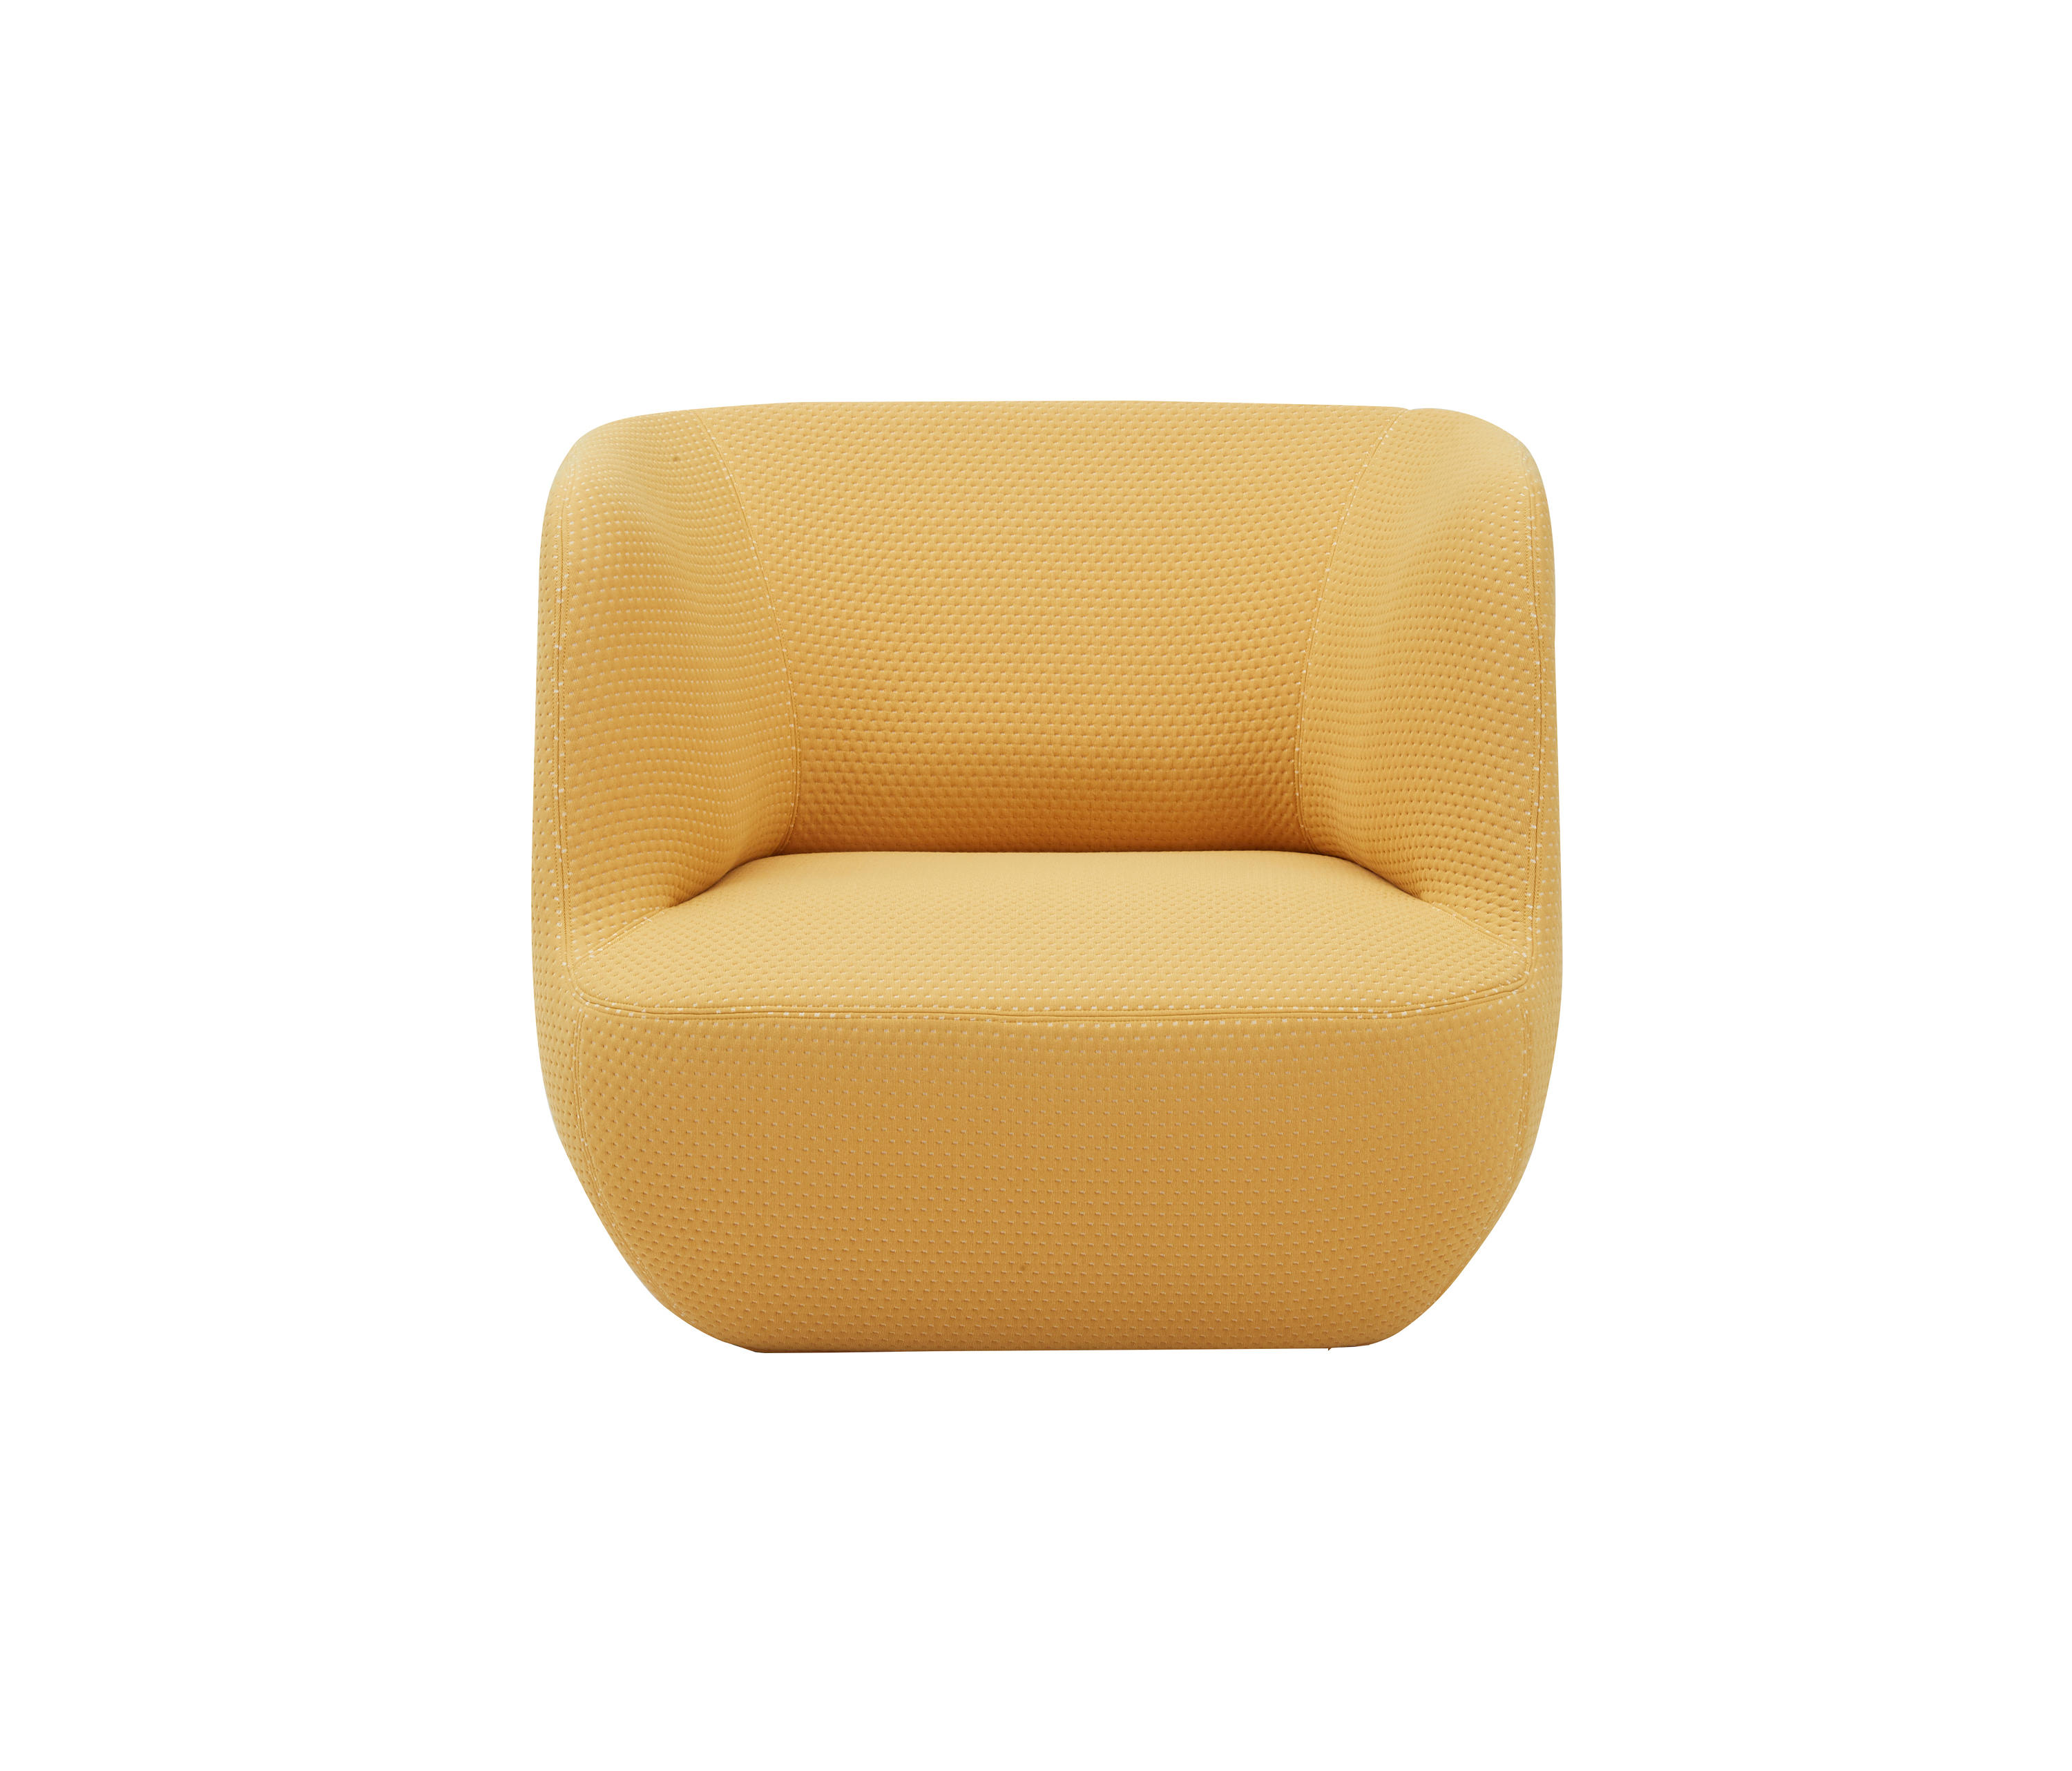 CLAY Seating Collection by Javier Moreno Studio for Softline